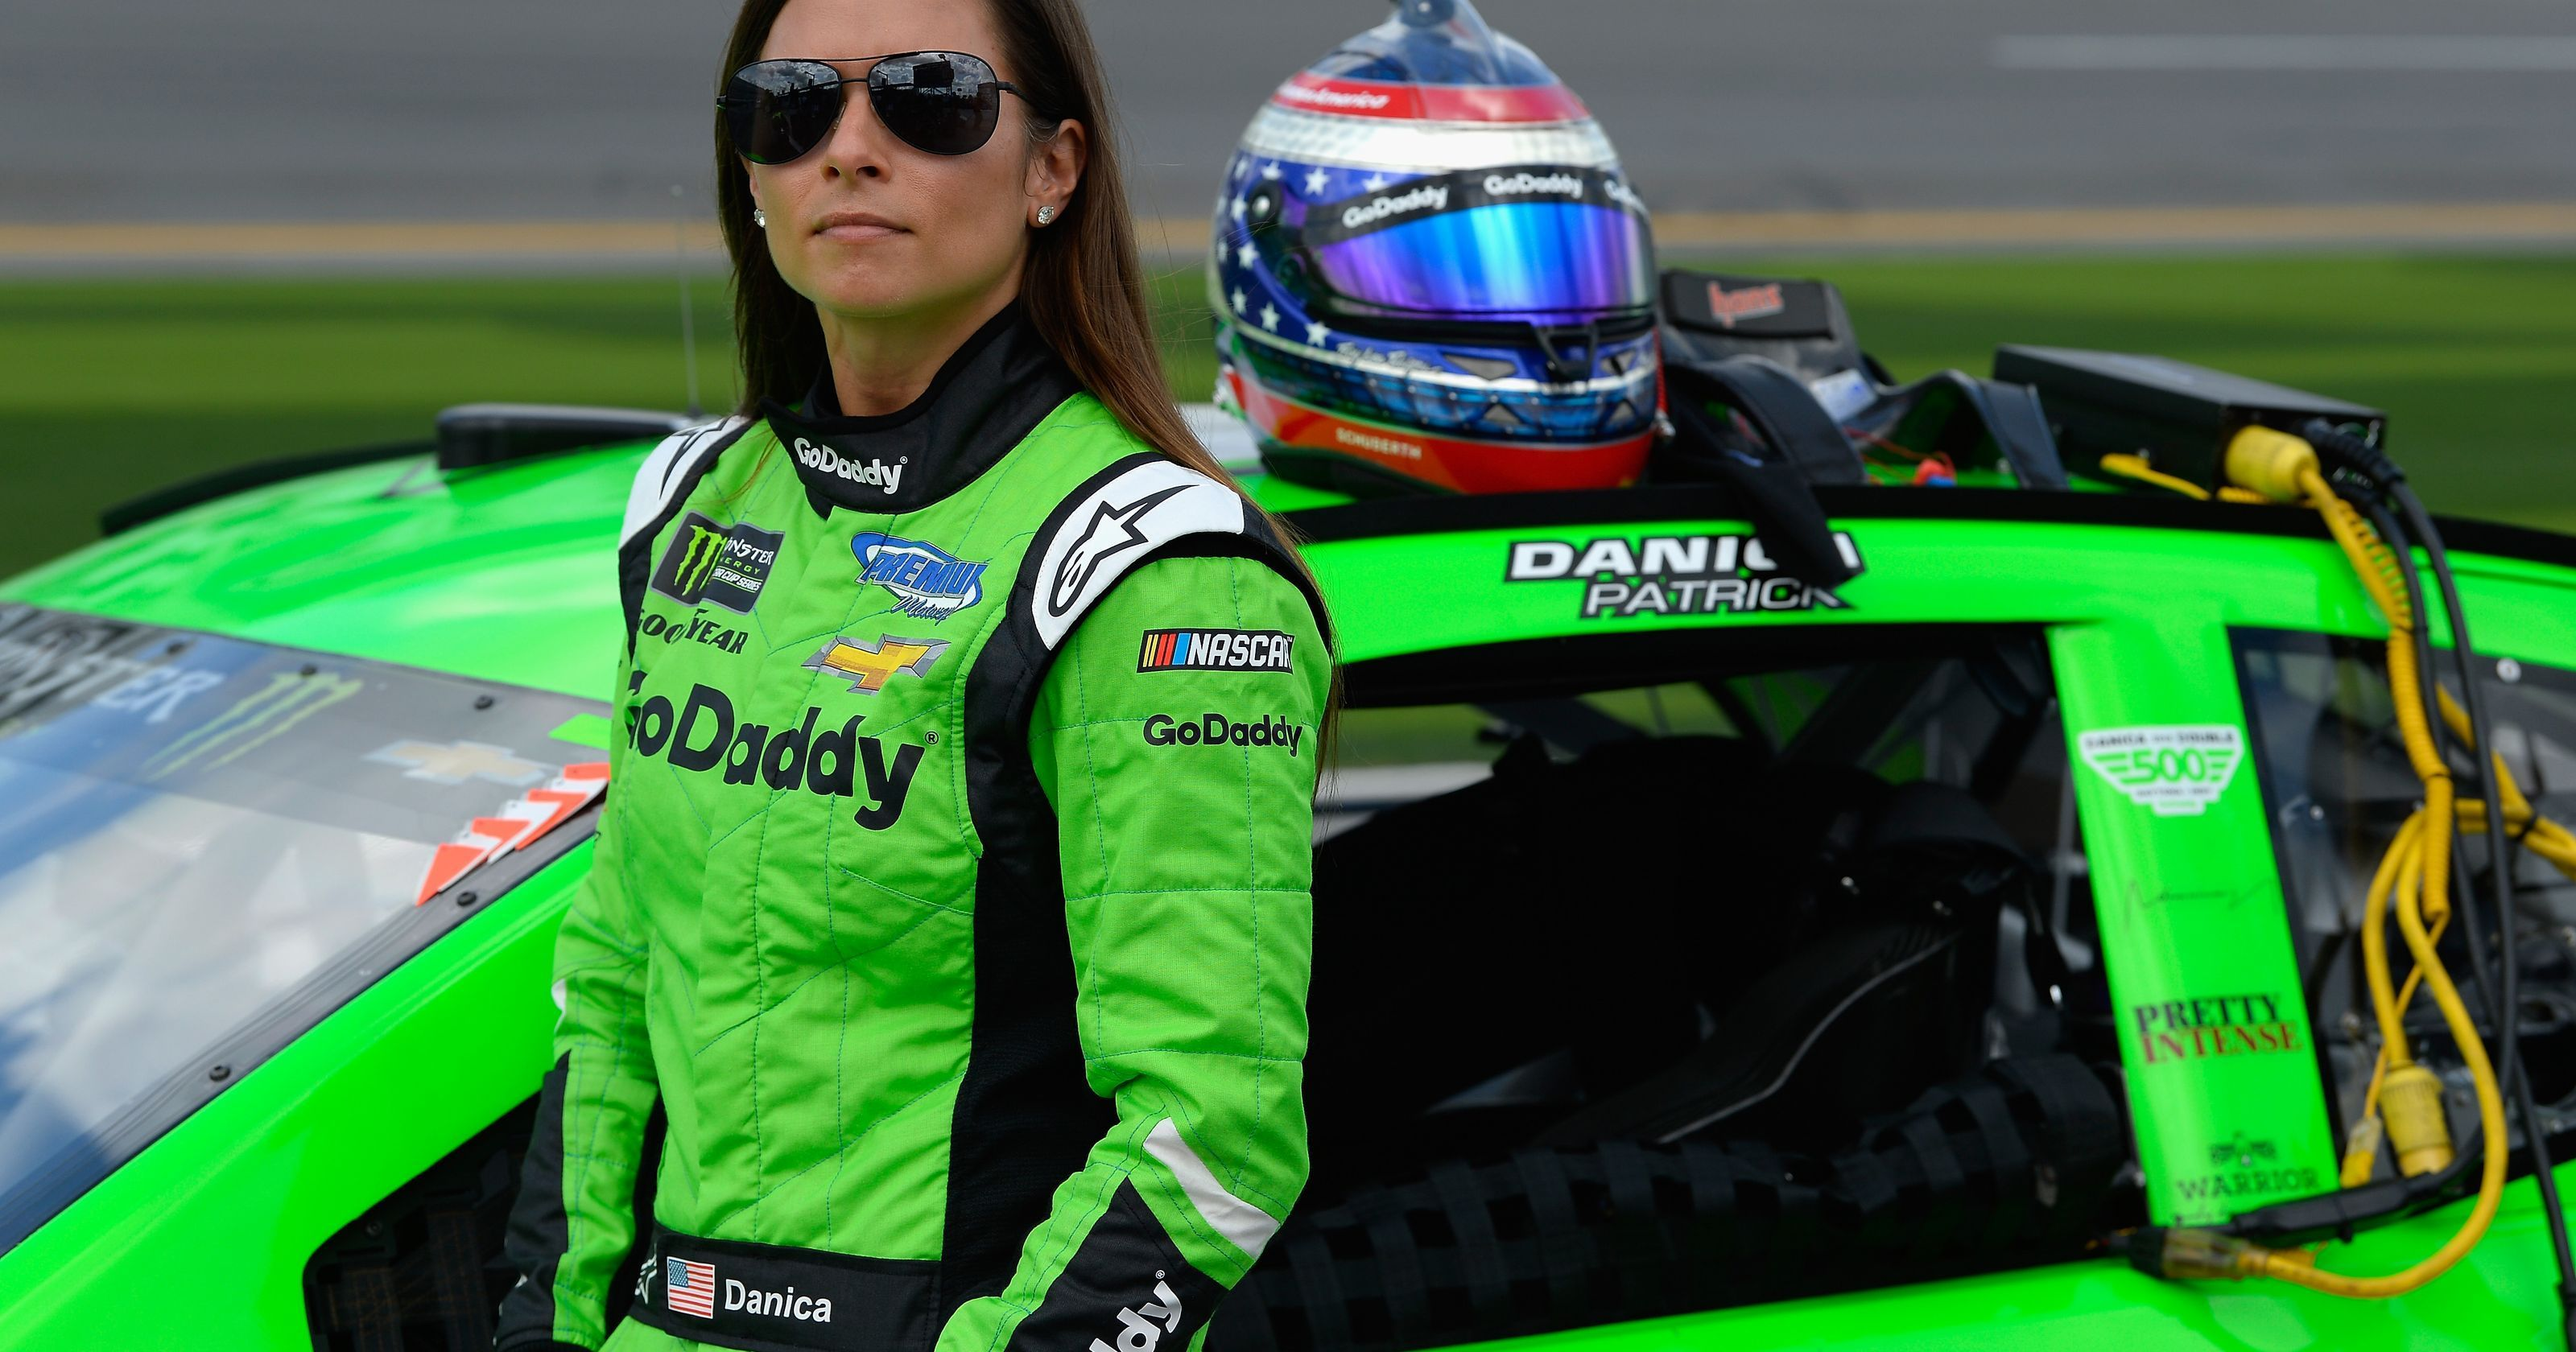 Aaron Rodgers Will Attend Race To Cheer On Danica Patrick Aaron Rodgers Danica Patrick Cheer